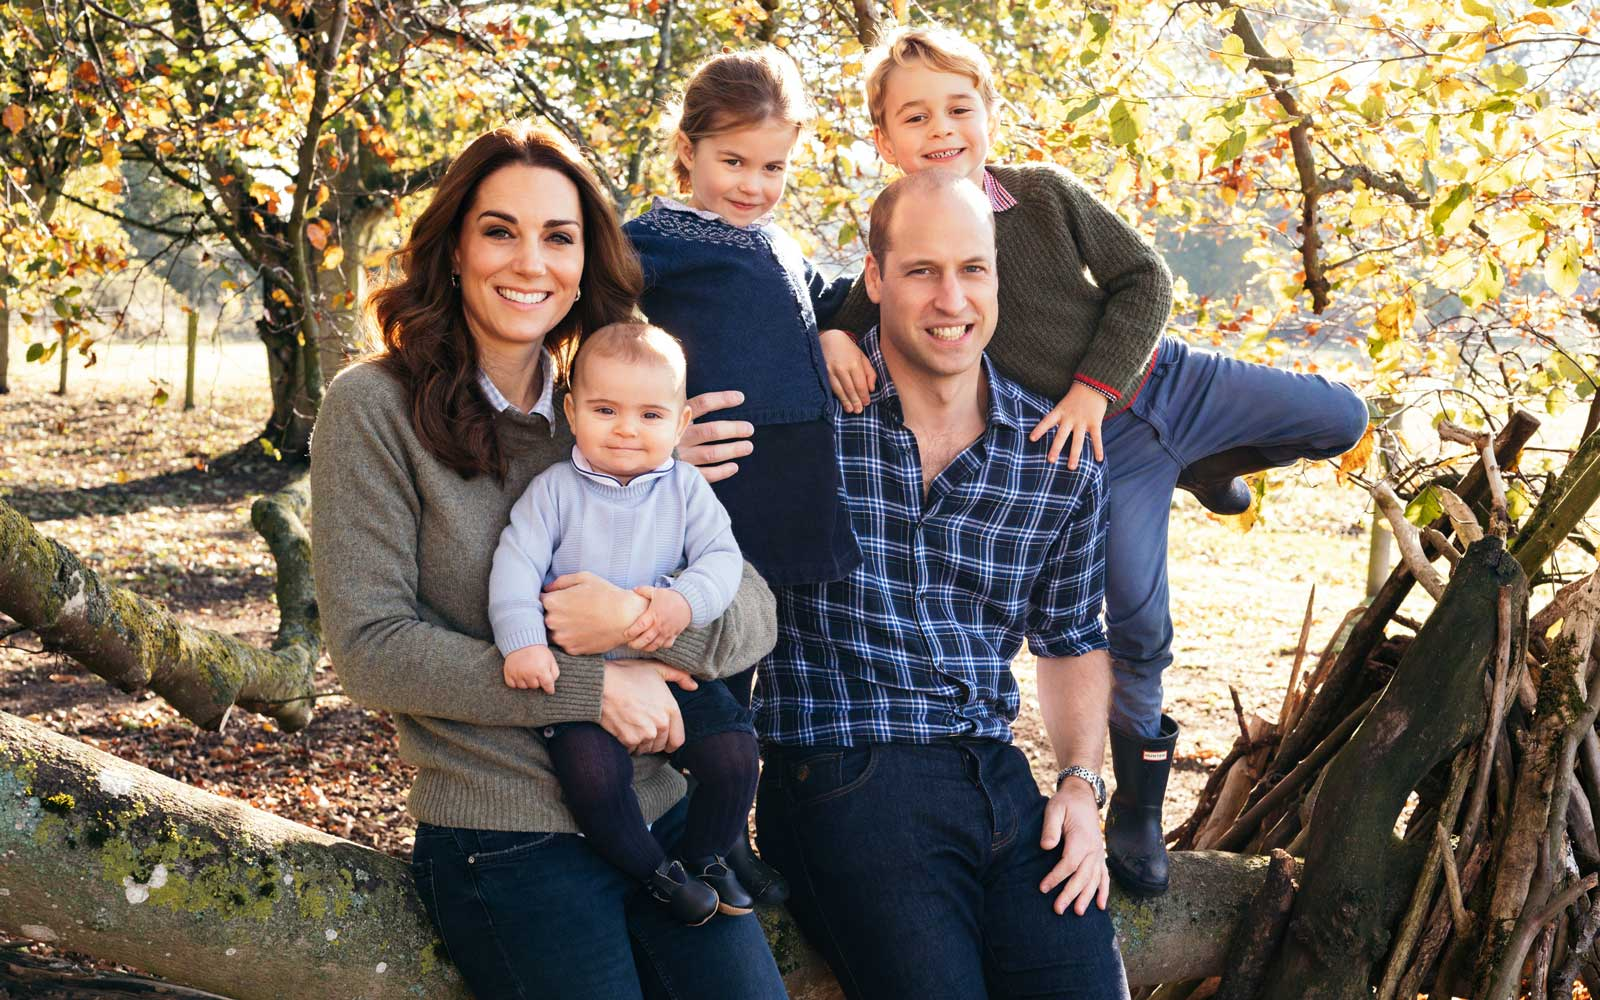 Duke and Duchess of Cambridge with their three children, Prince Louis, Princess Charlotte and Prince George